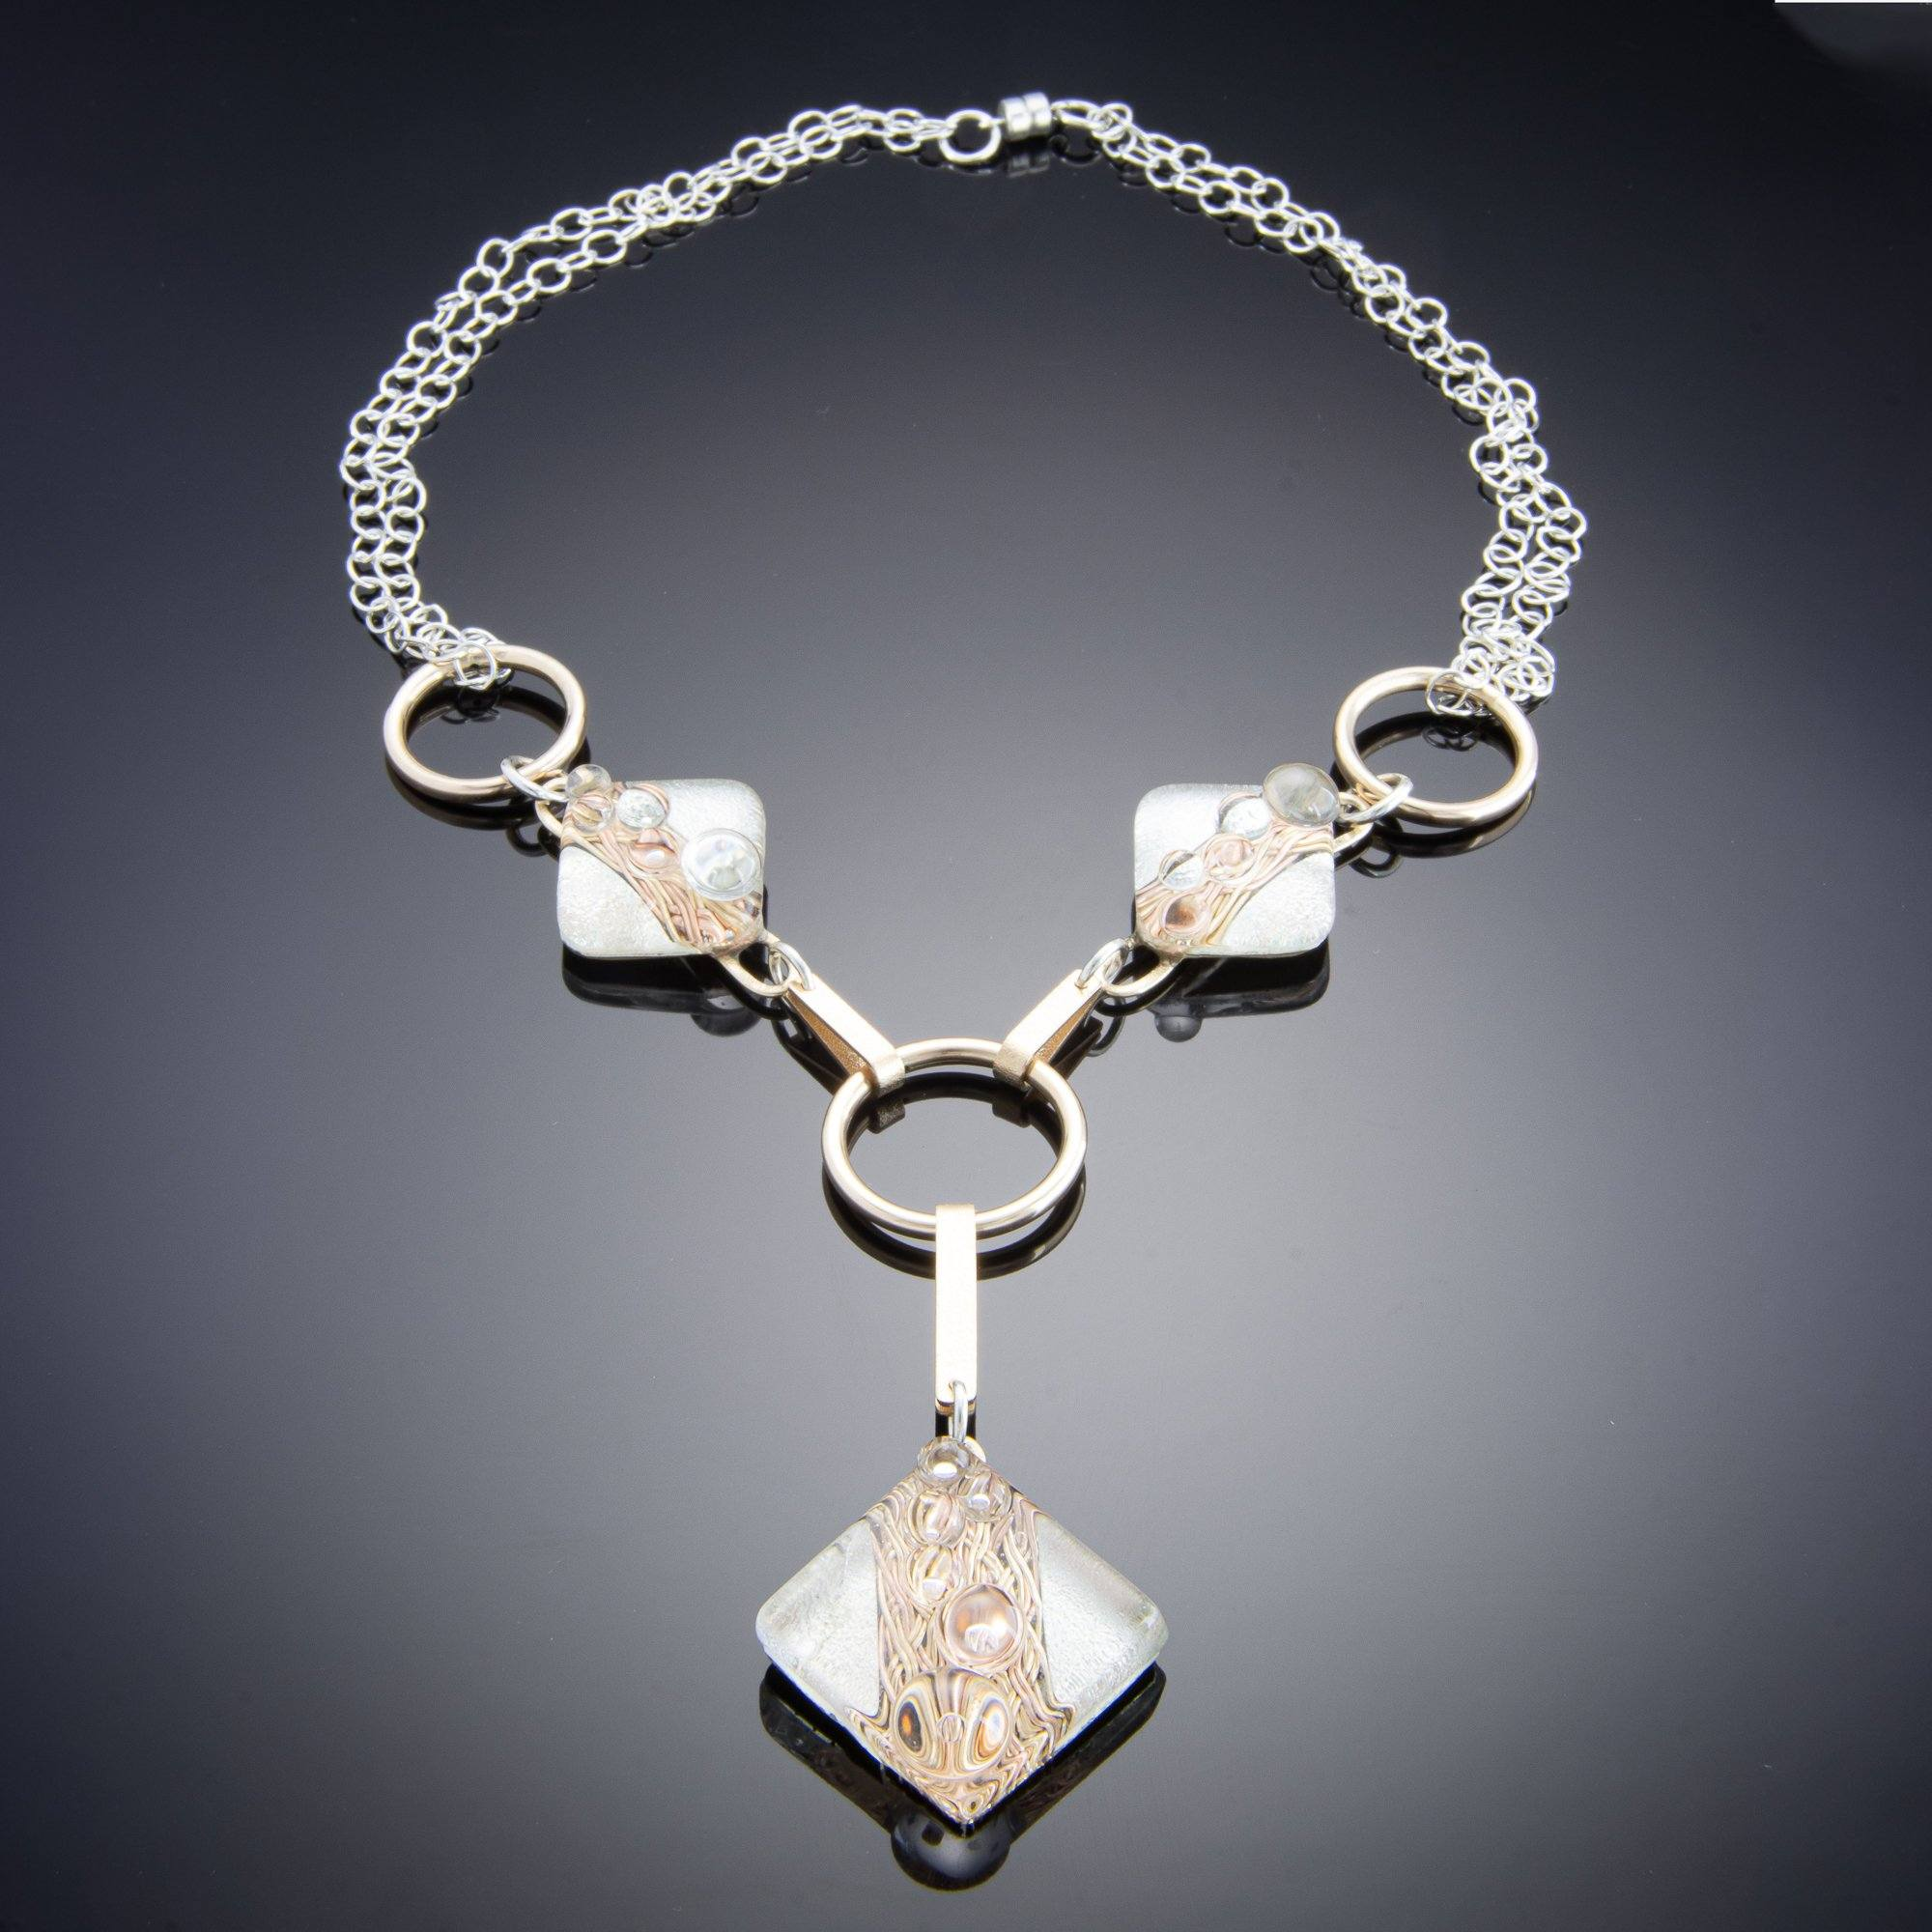 Tahmi - the art of woven metal: Bubbly Series - Woven Bubbly 'Y' Necklace